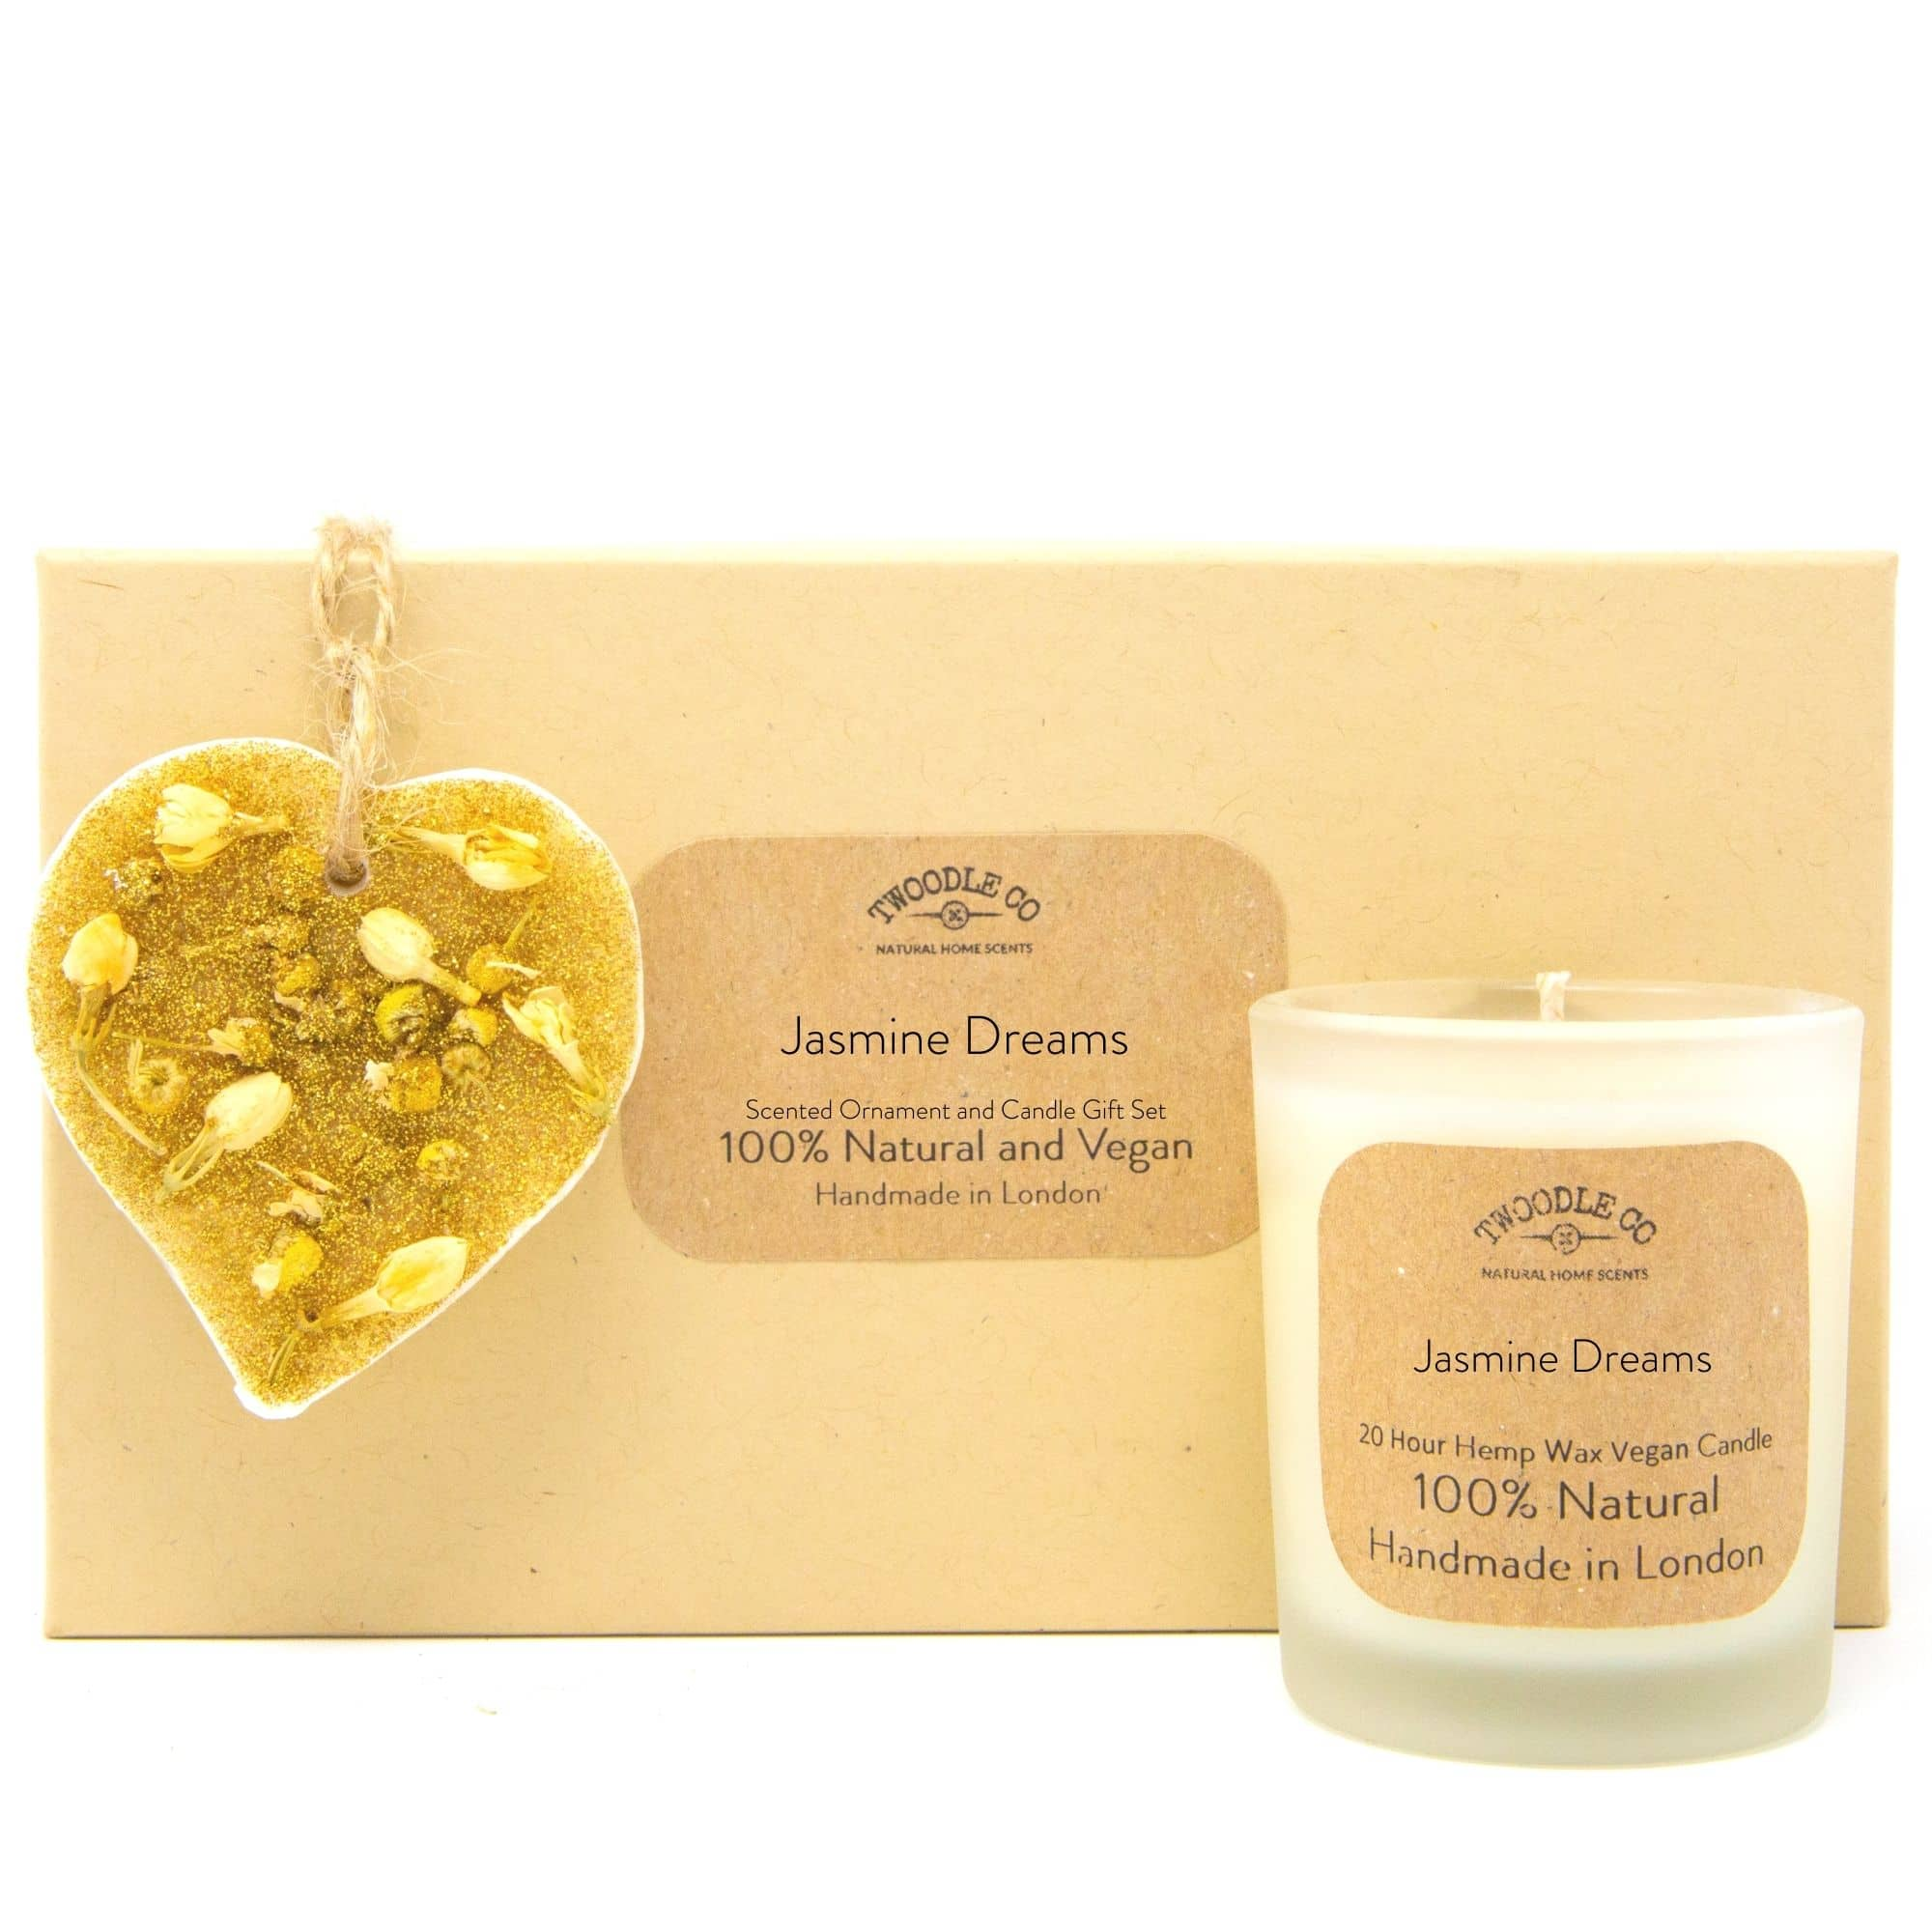 Jasmine Dreams | Scented Ornament and Candle Gift Set